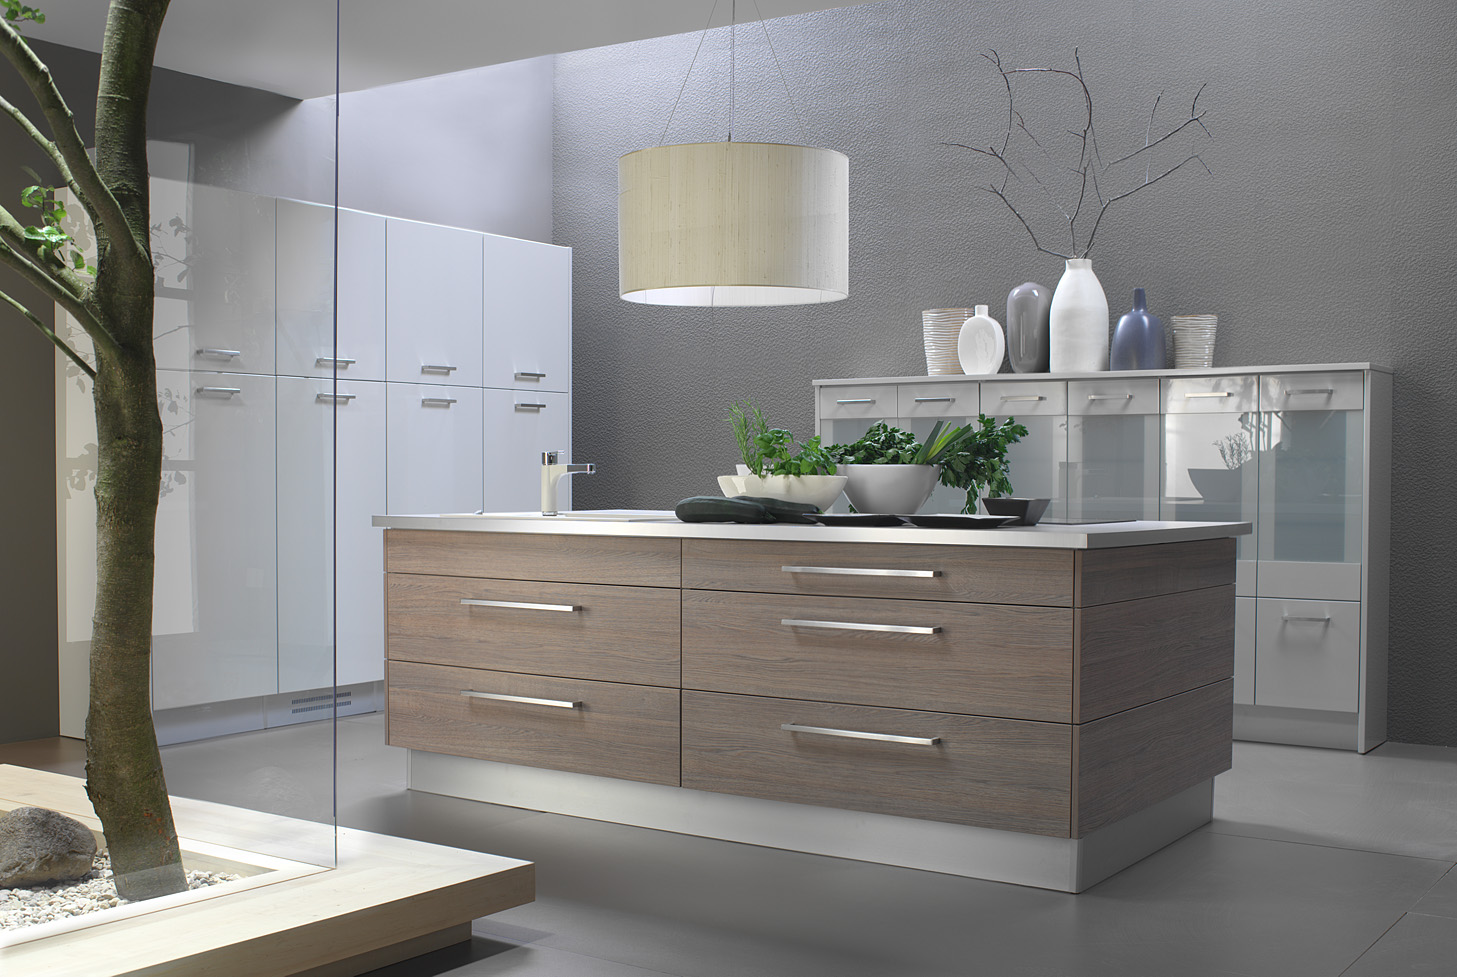 Best Material For Kitchen Cabinet Doors